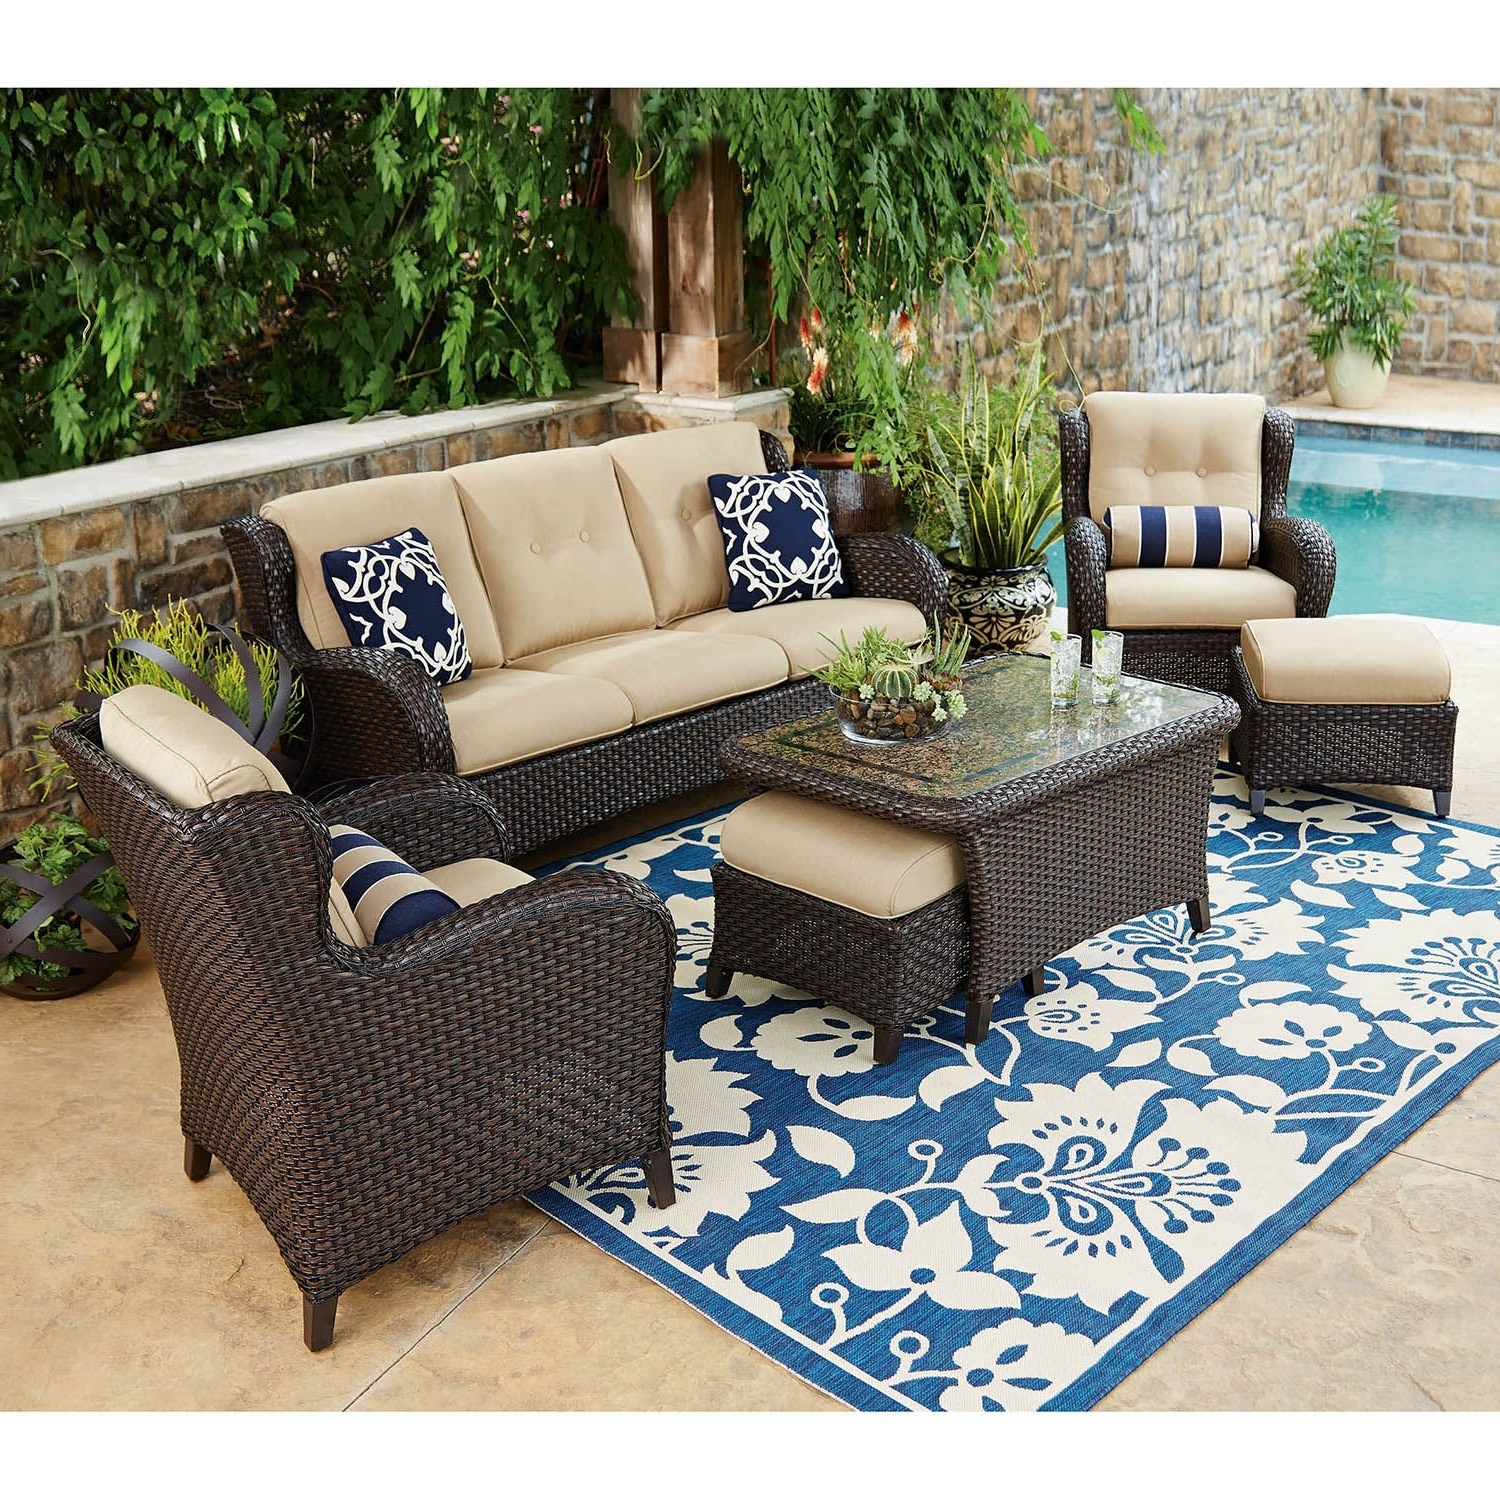 Most Recently Released Patio : Patio Couch Set Fire Pit Inspirational Furniture With Tab Regarding Wayfair Outdoor Patio Conversation Sets (View 19 of 20)